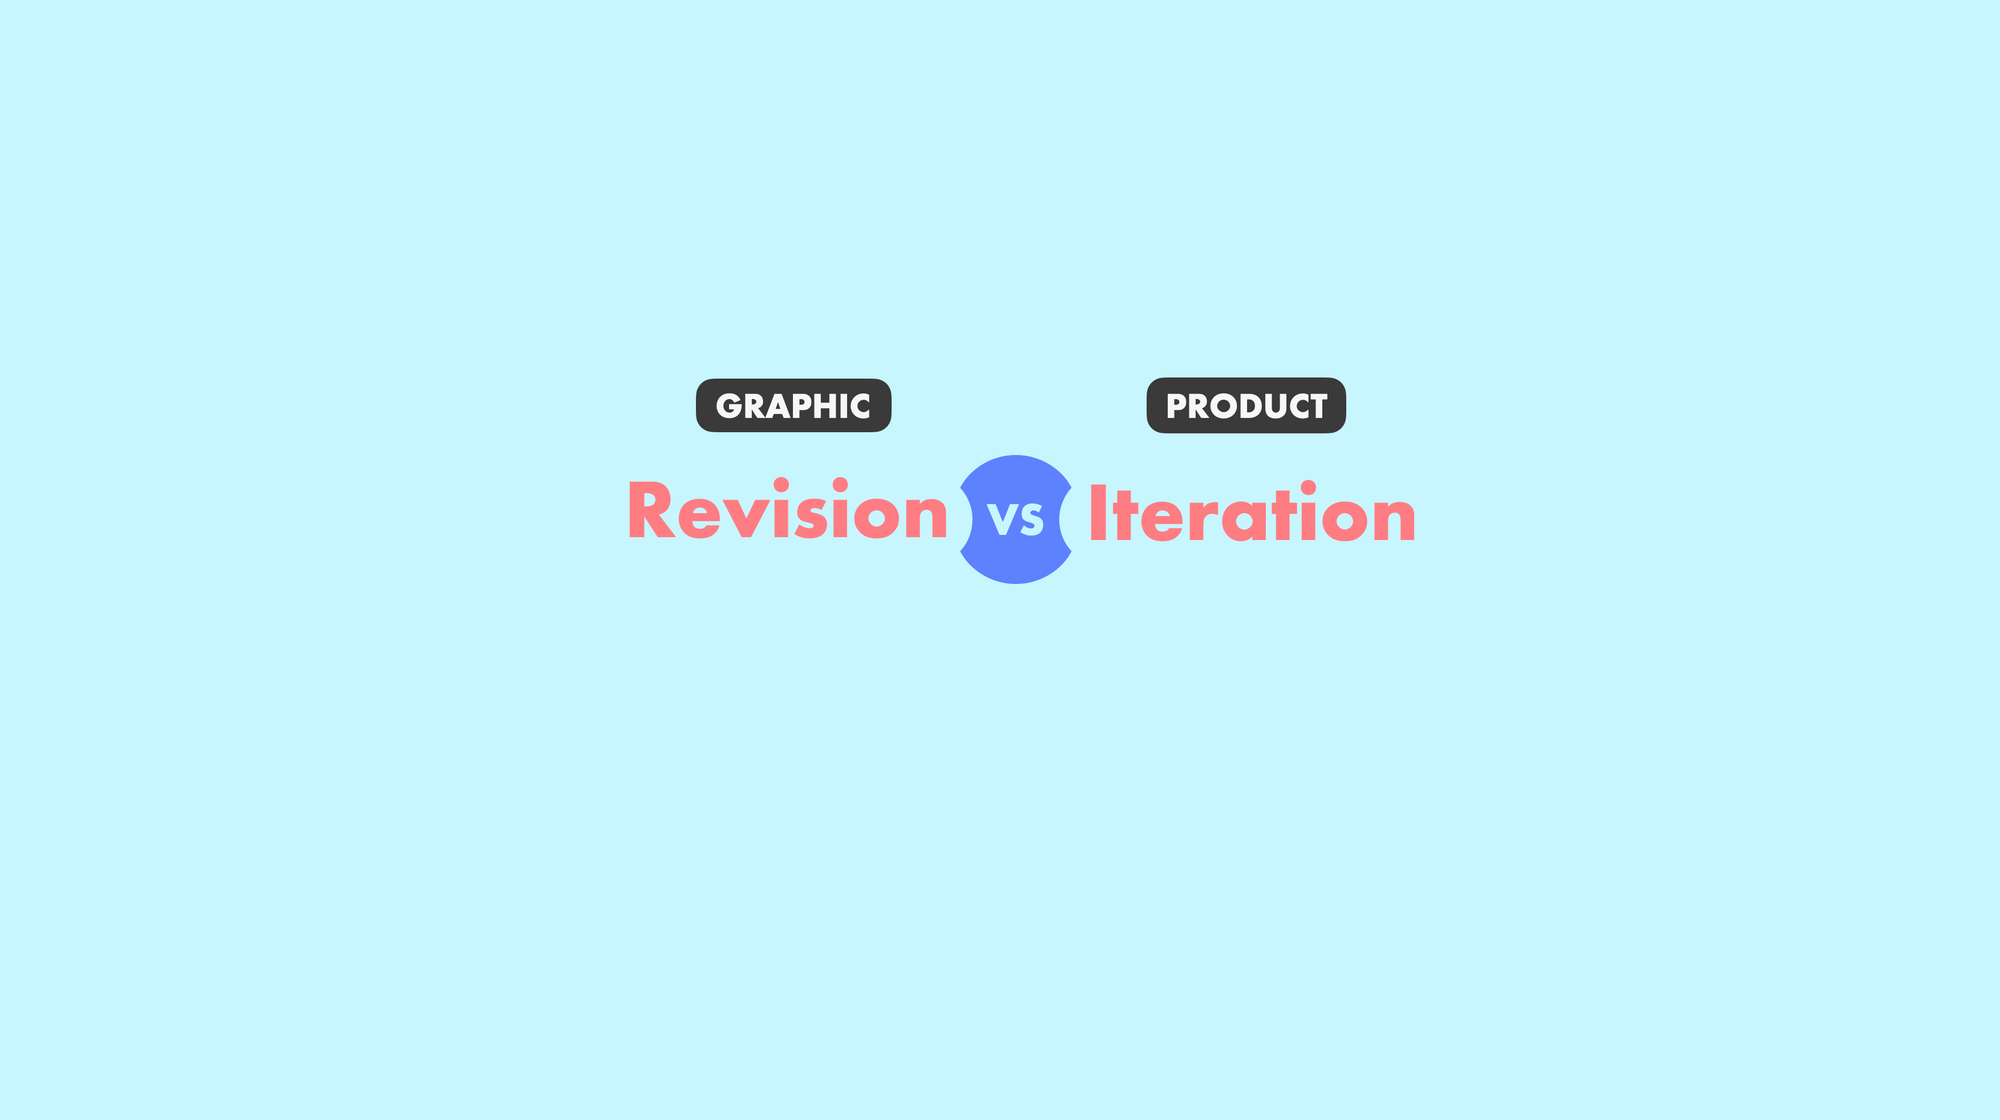 Revision (graphic) vs Iteration (product) - Coral text on blue bg